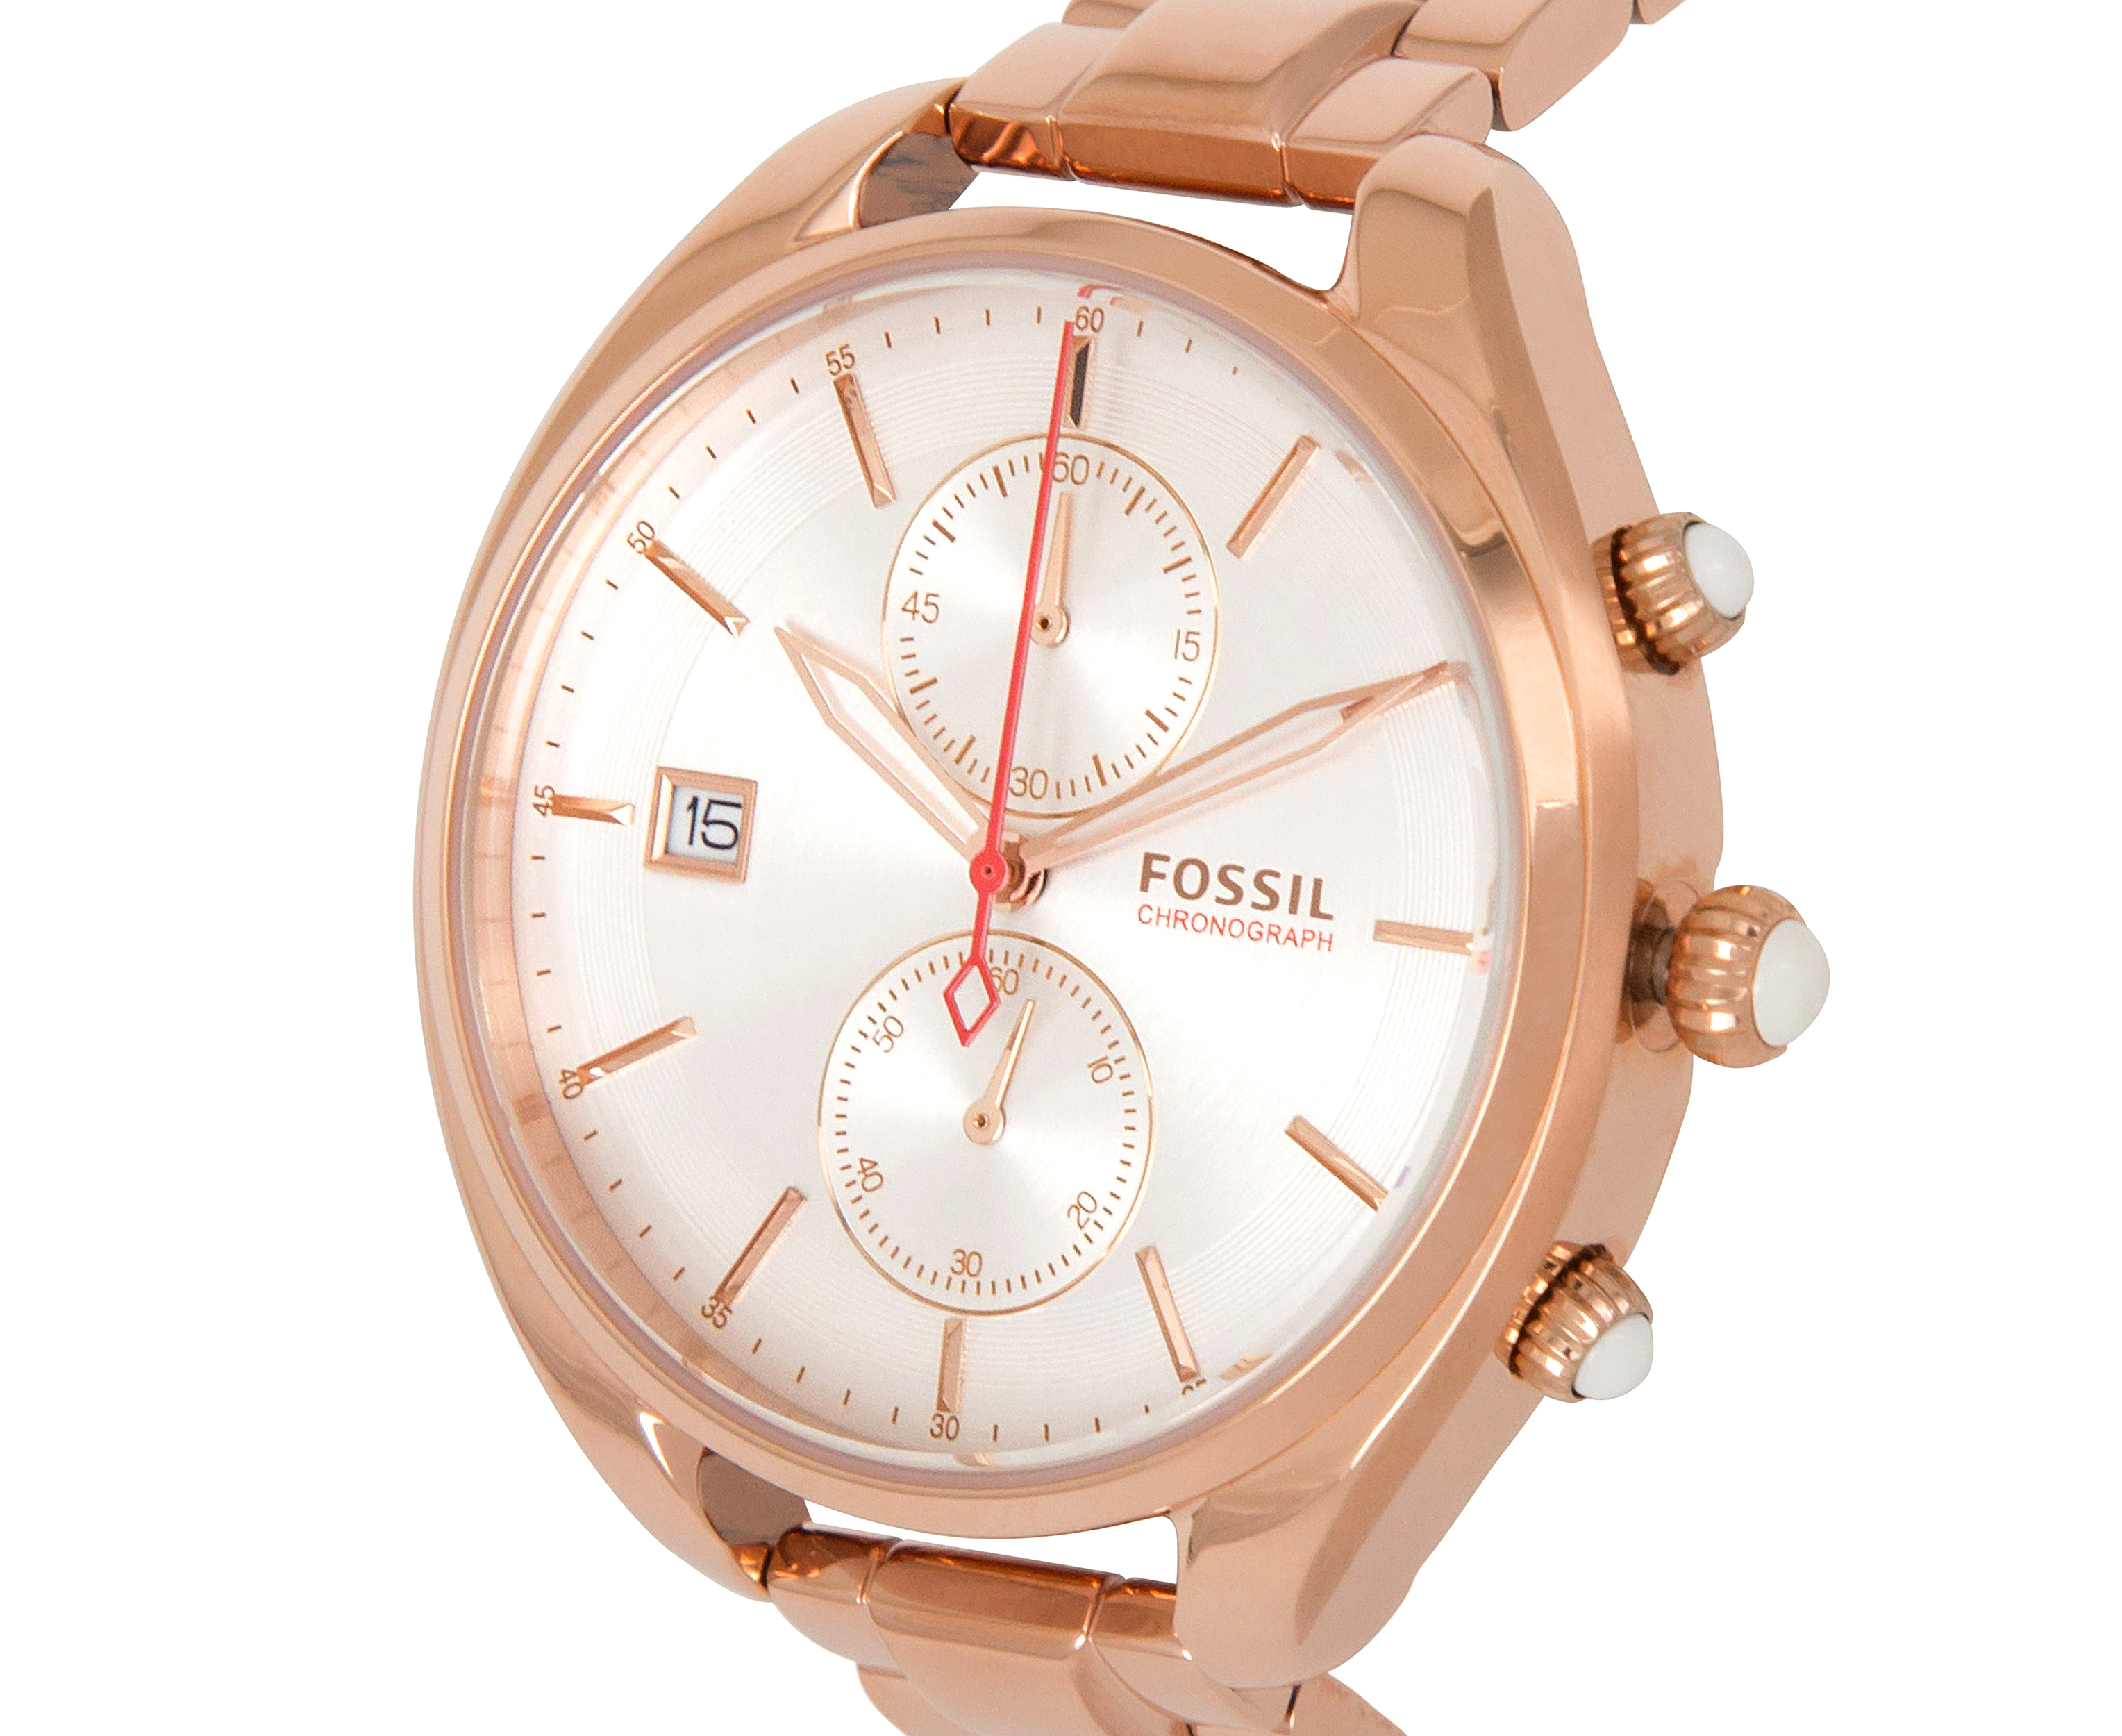 fossil women 39 s 38mm land racer chronograph watch rose gold great daily deals at australia 39 s. Black Bedroom Furniture Sets. Home Design Ideas